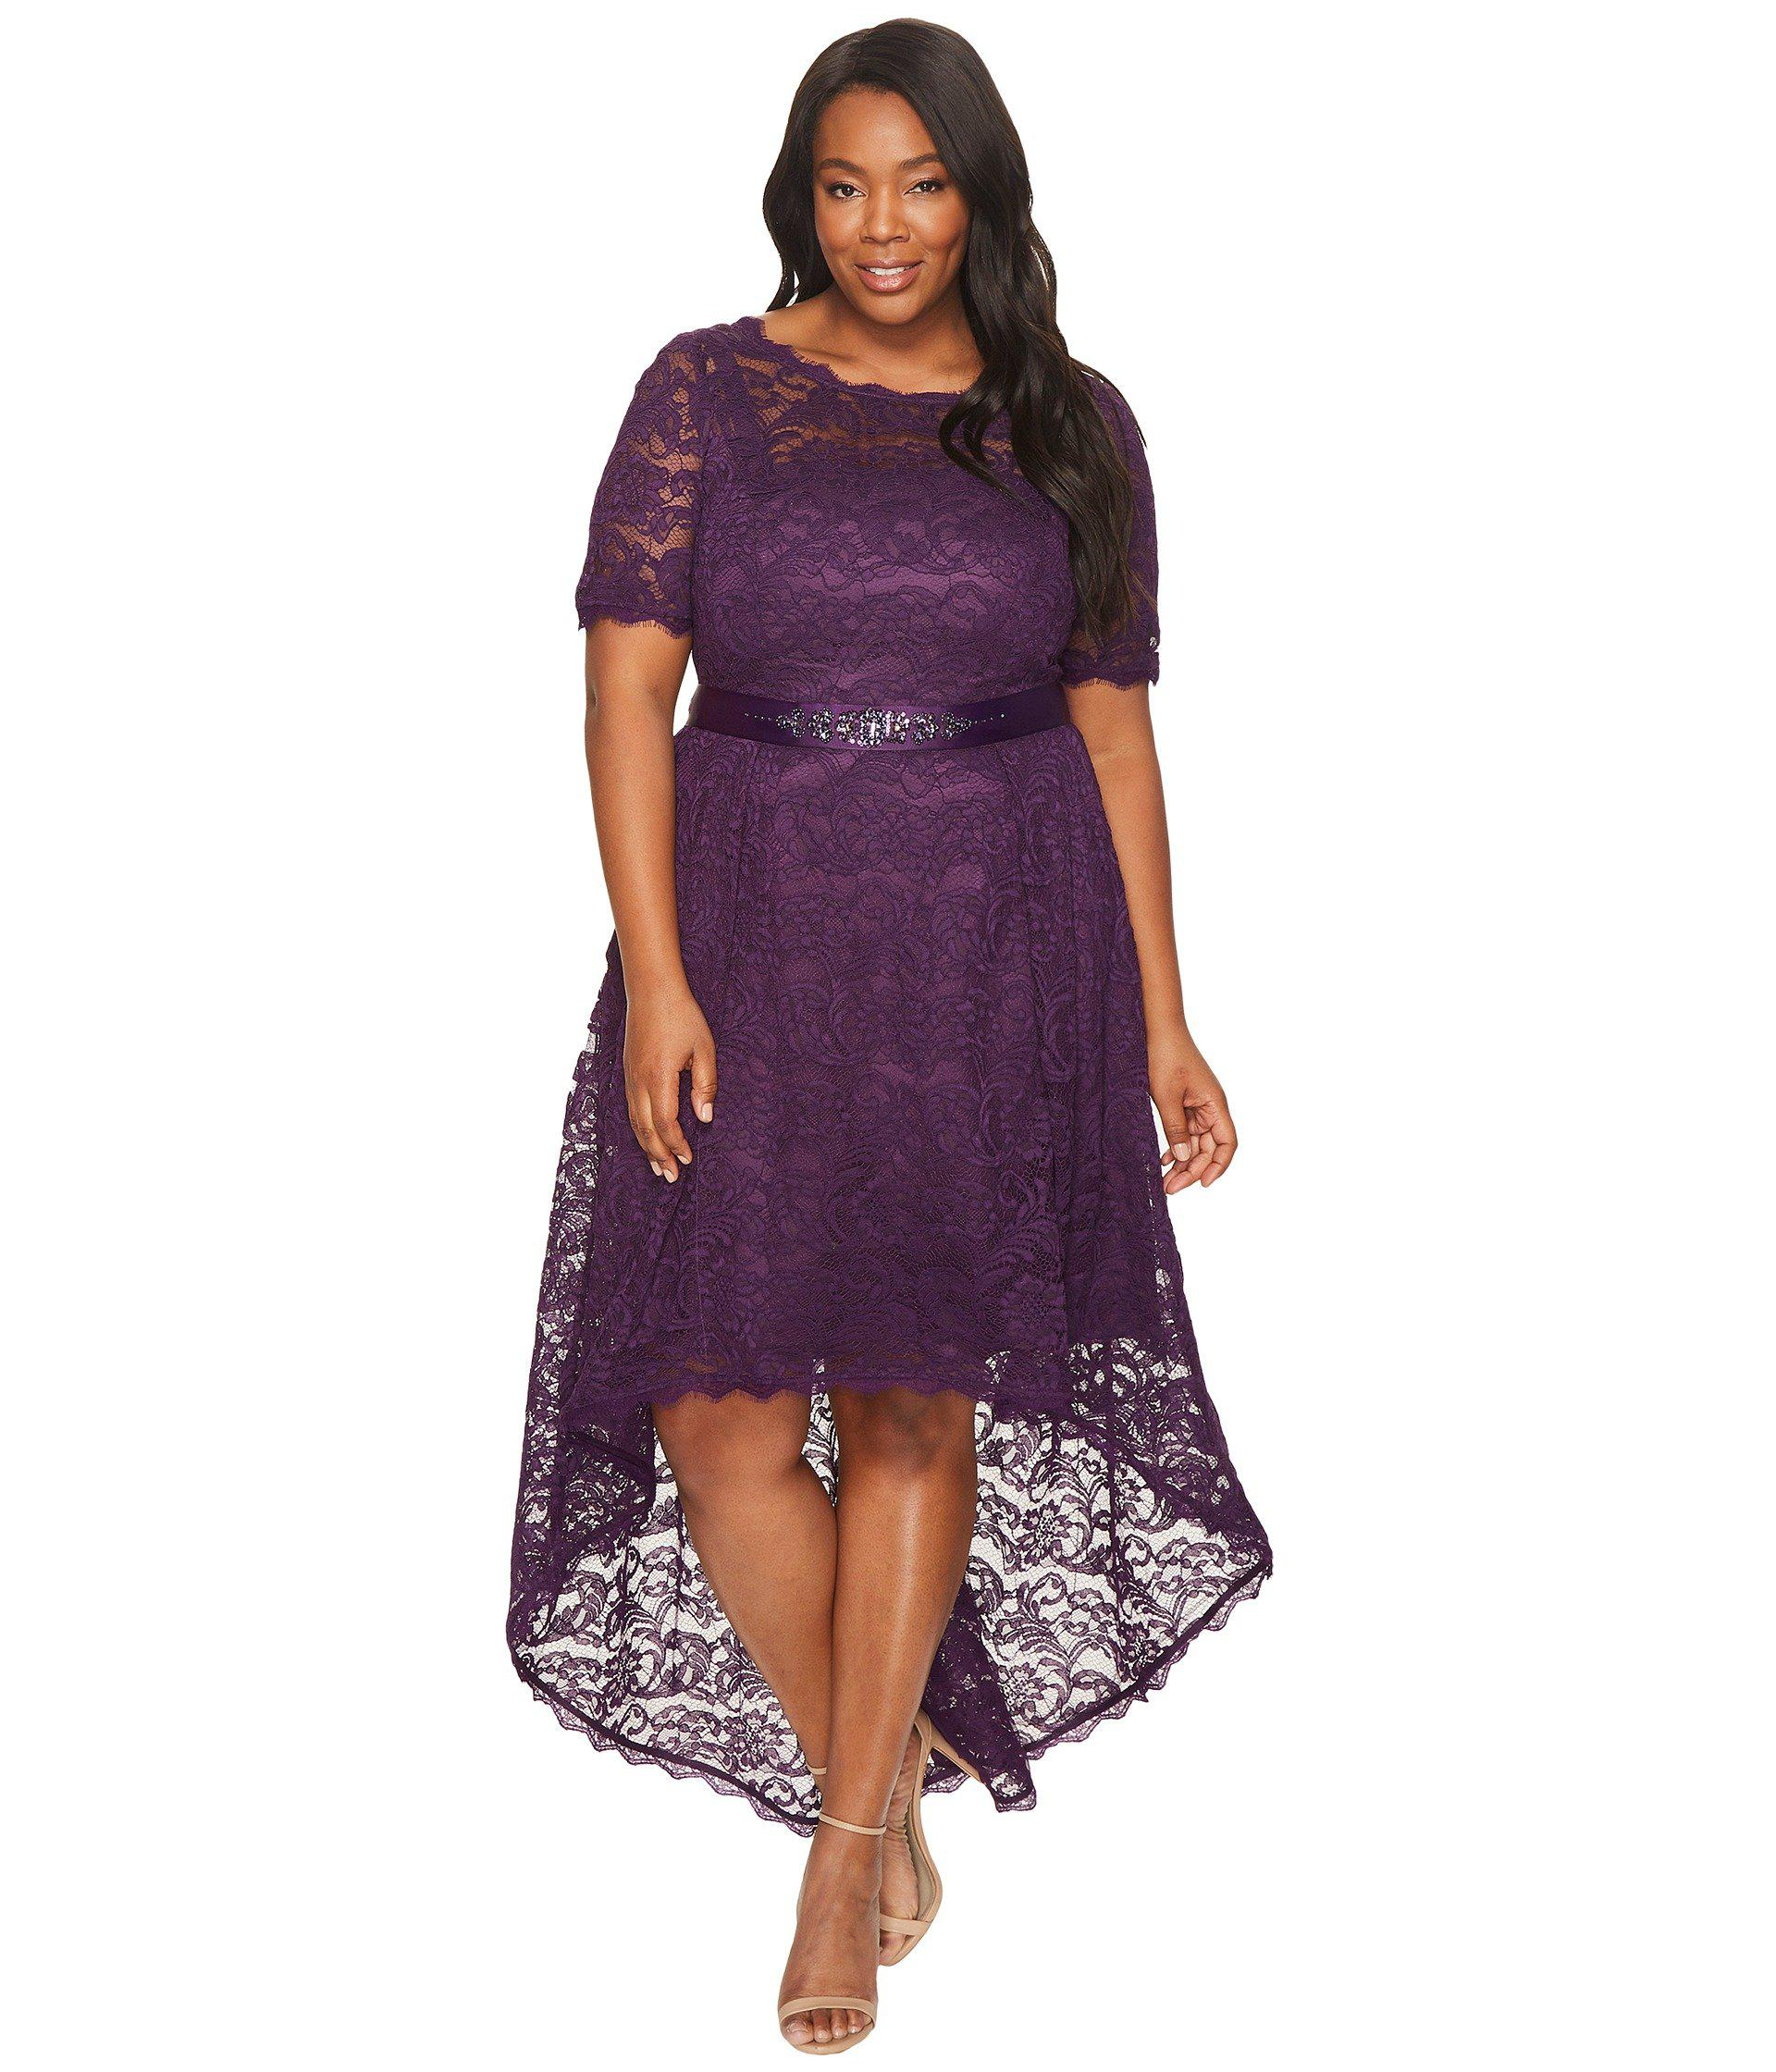 Lyst - Adrianna Papell Plus Size Short Sleeve Lace Dress With High ...